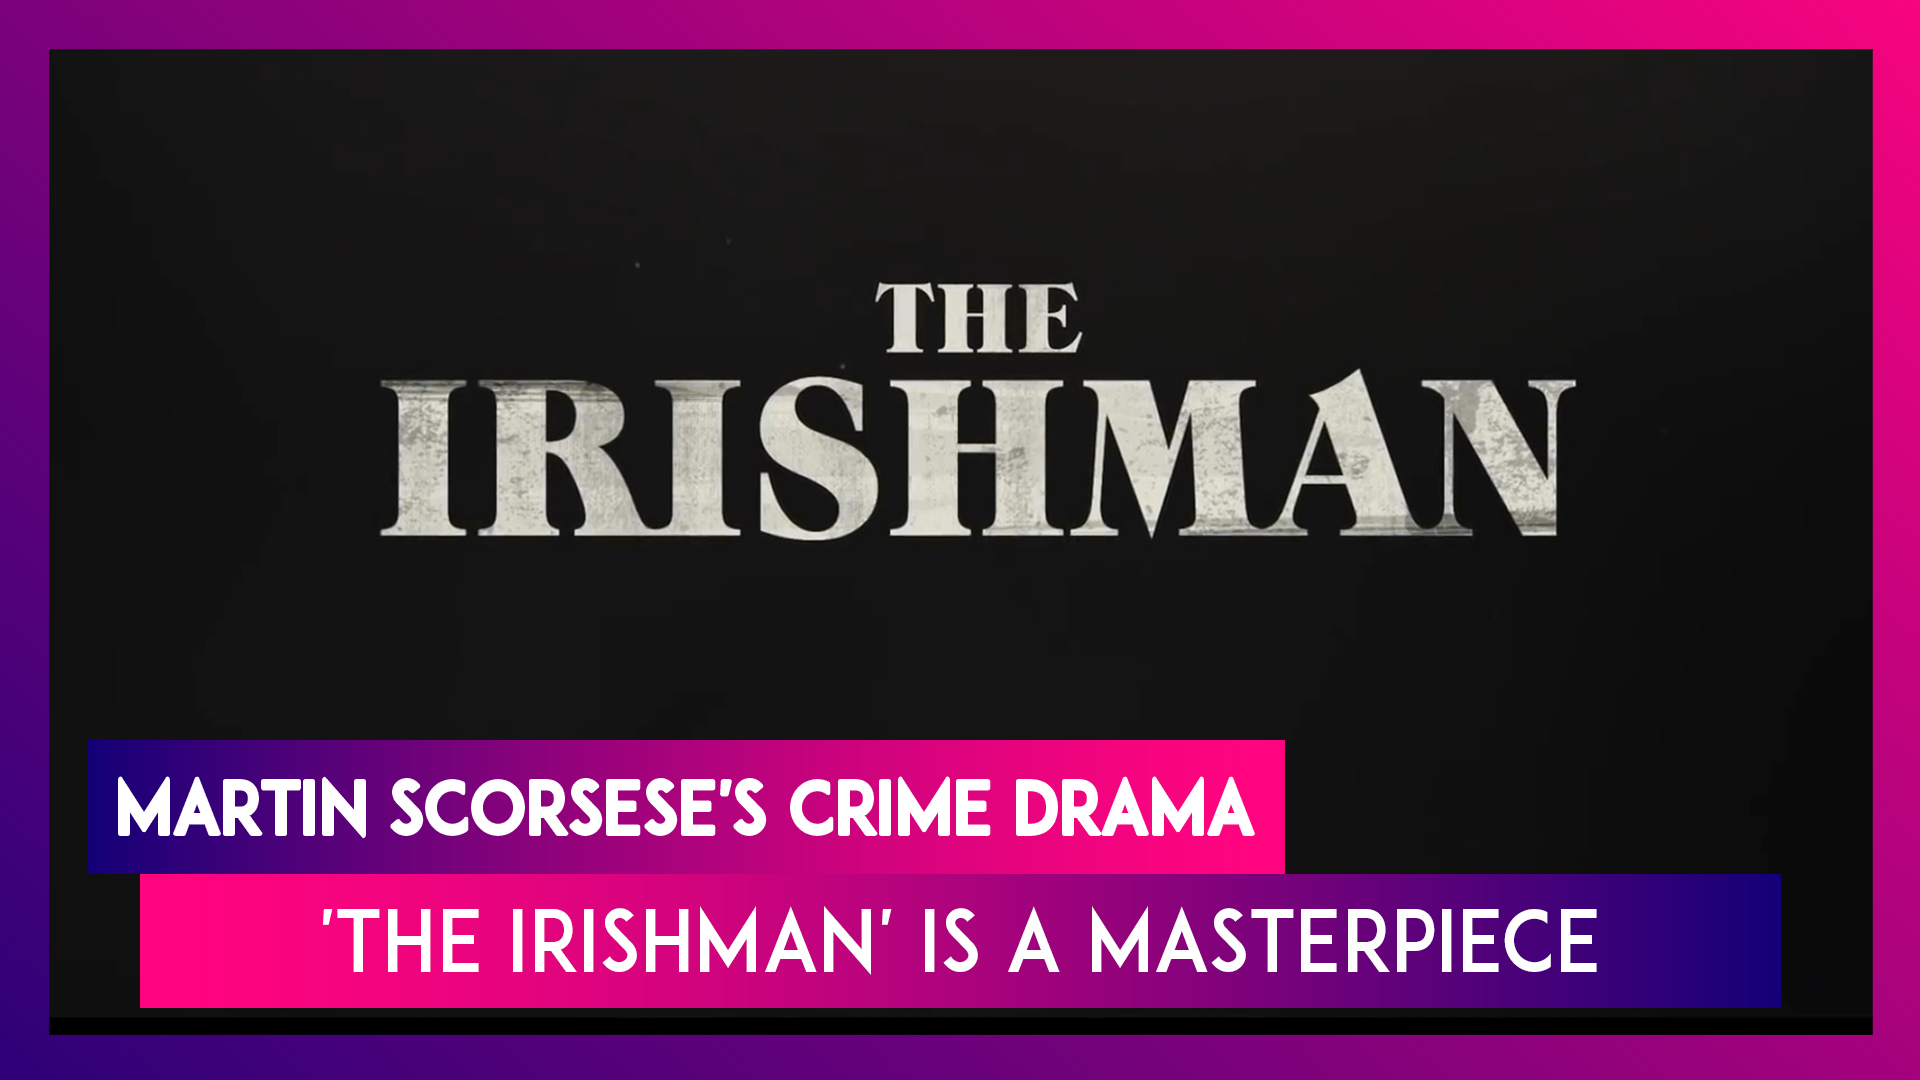 The Irishman Movie Review: Martin Scorsese's Netflix Film Is Nothing Short Of A Masterpiece